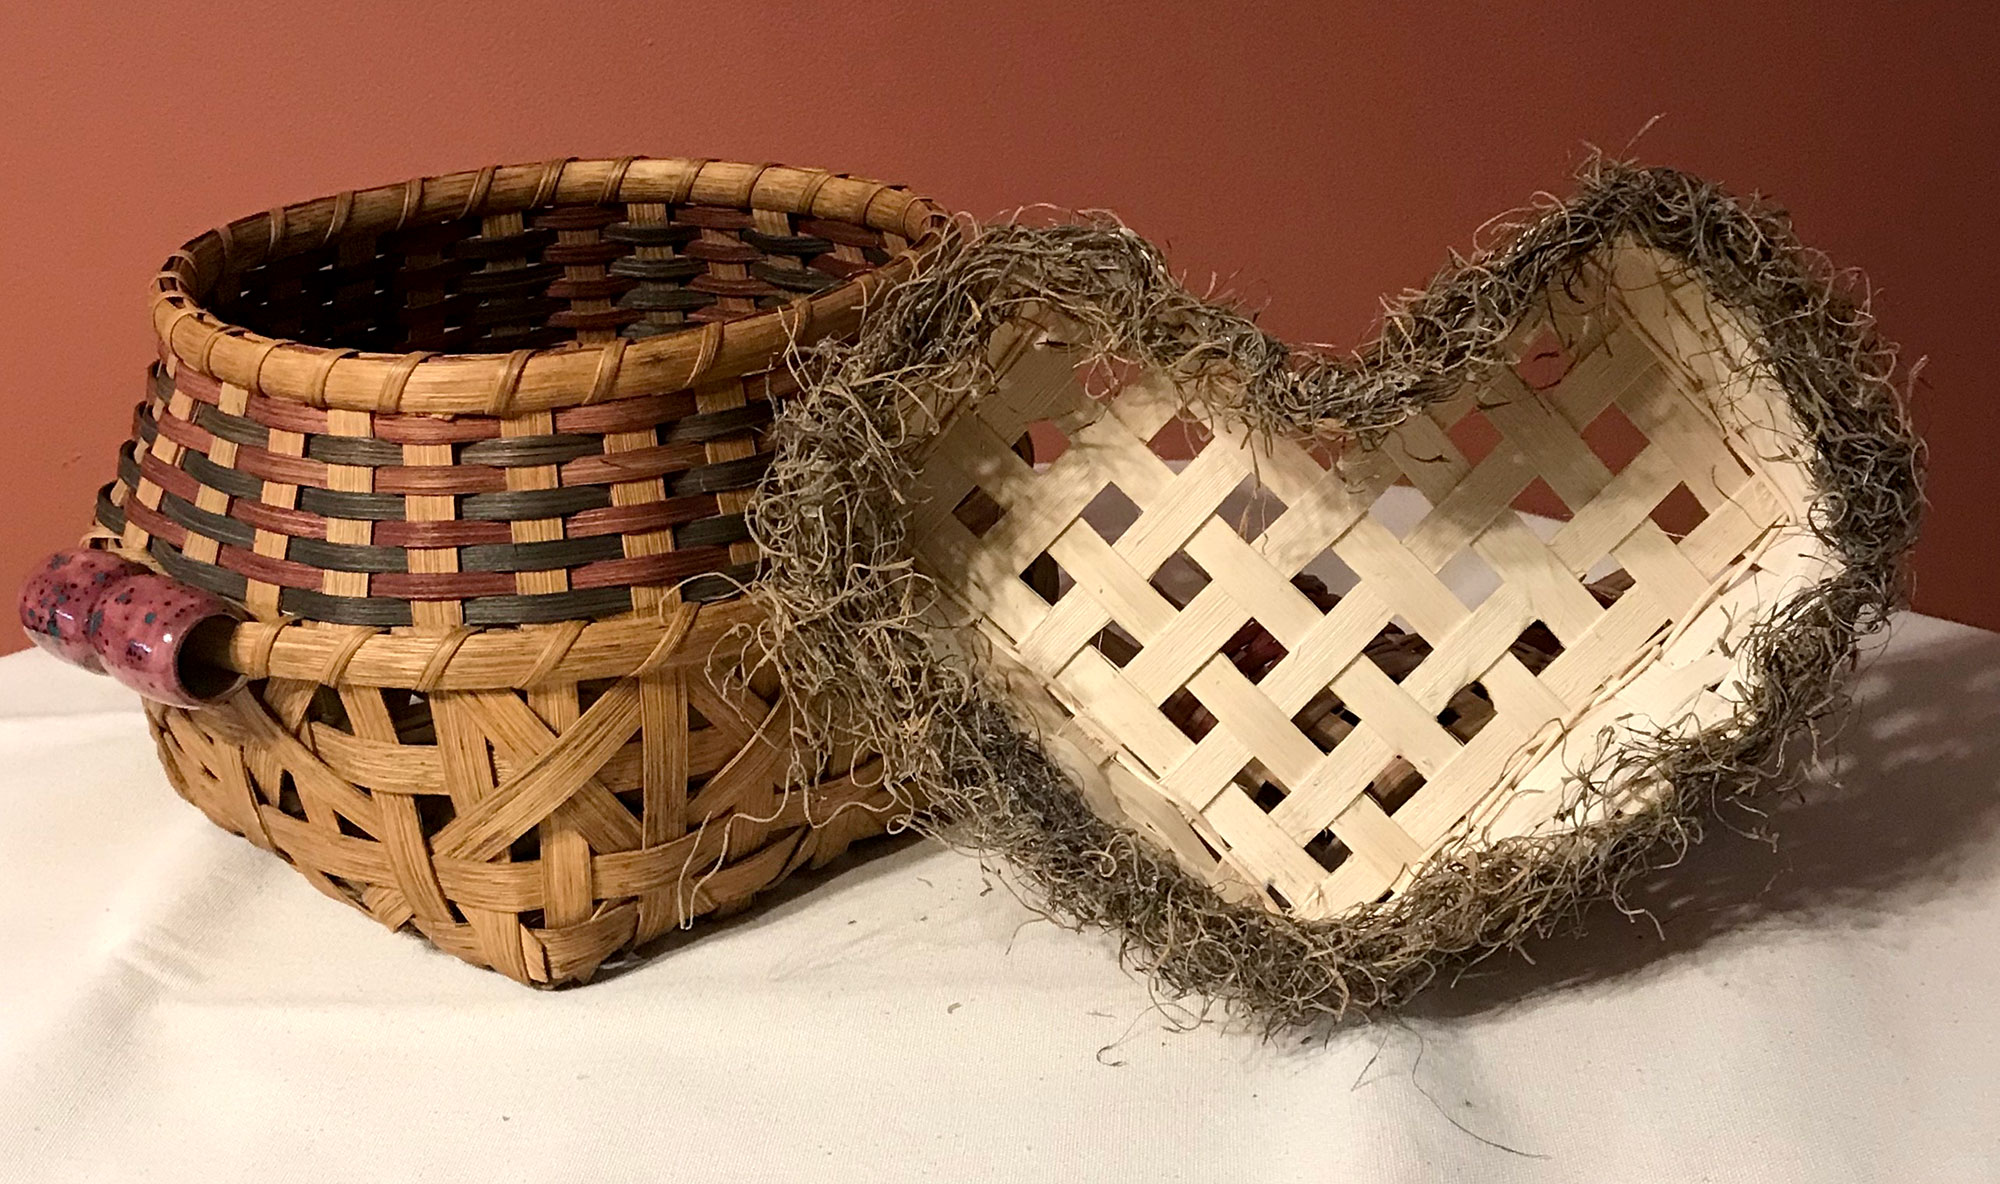 How to Create Intricate Baskets with Ceramic Handles with Cheryl Dixon